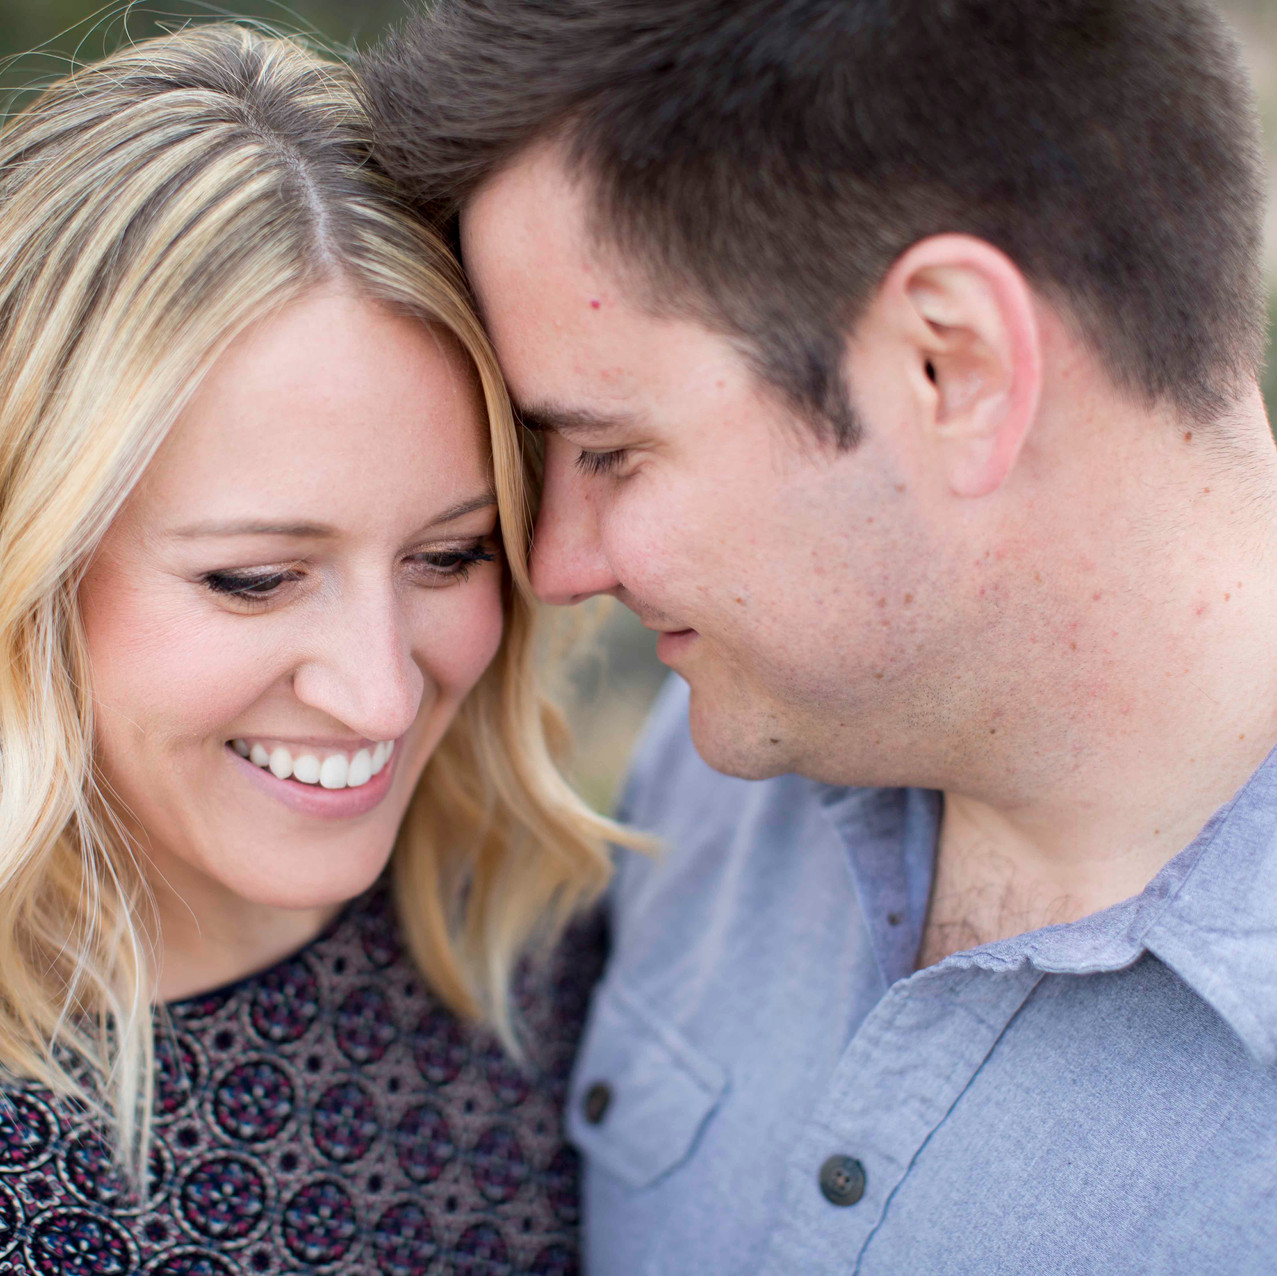 colorado-springs-engagement-photographer-_56